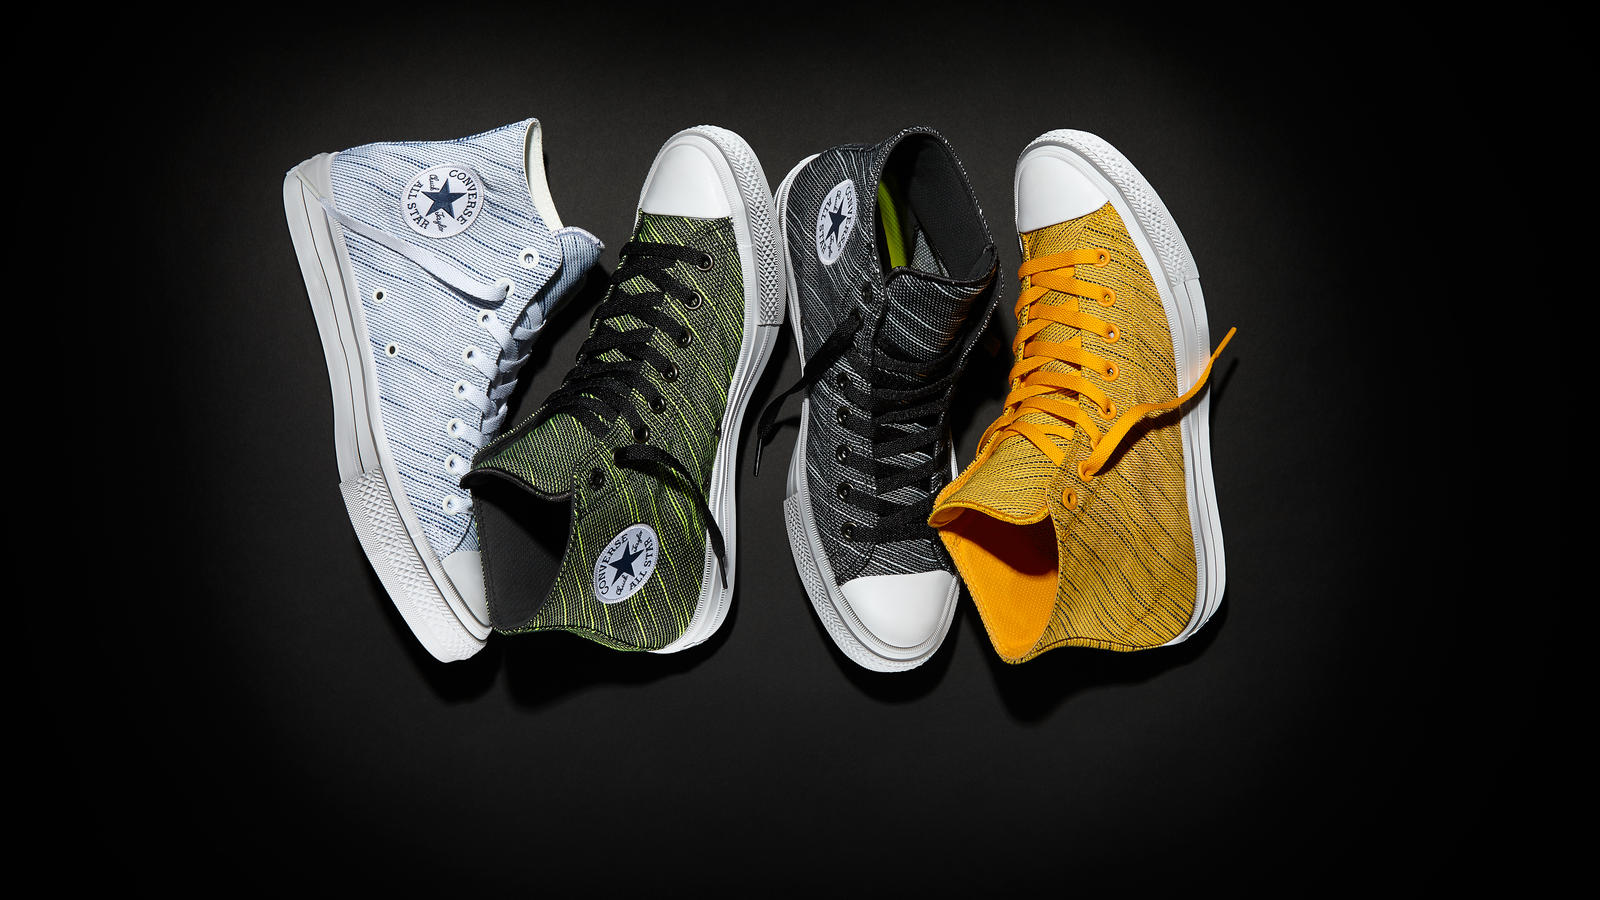 bf2314671c72 Converse Chuck Taylor All Star Ii Knit High Top Group Original